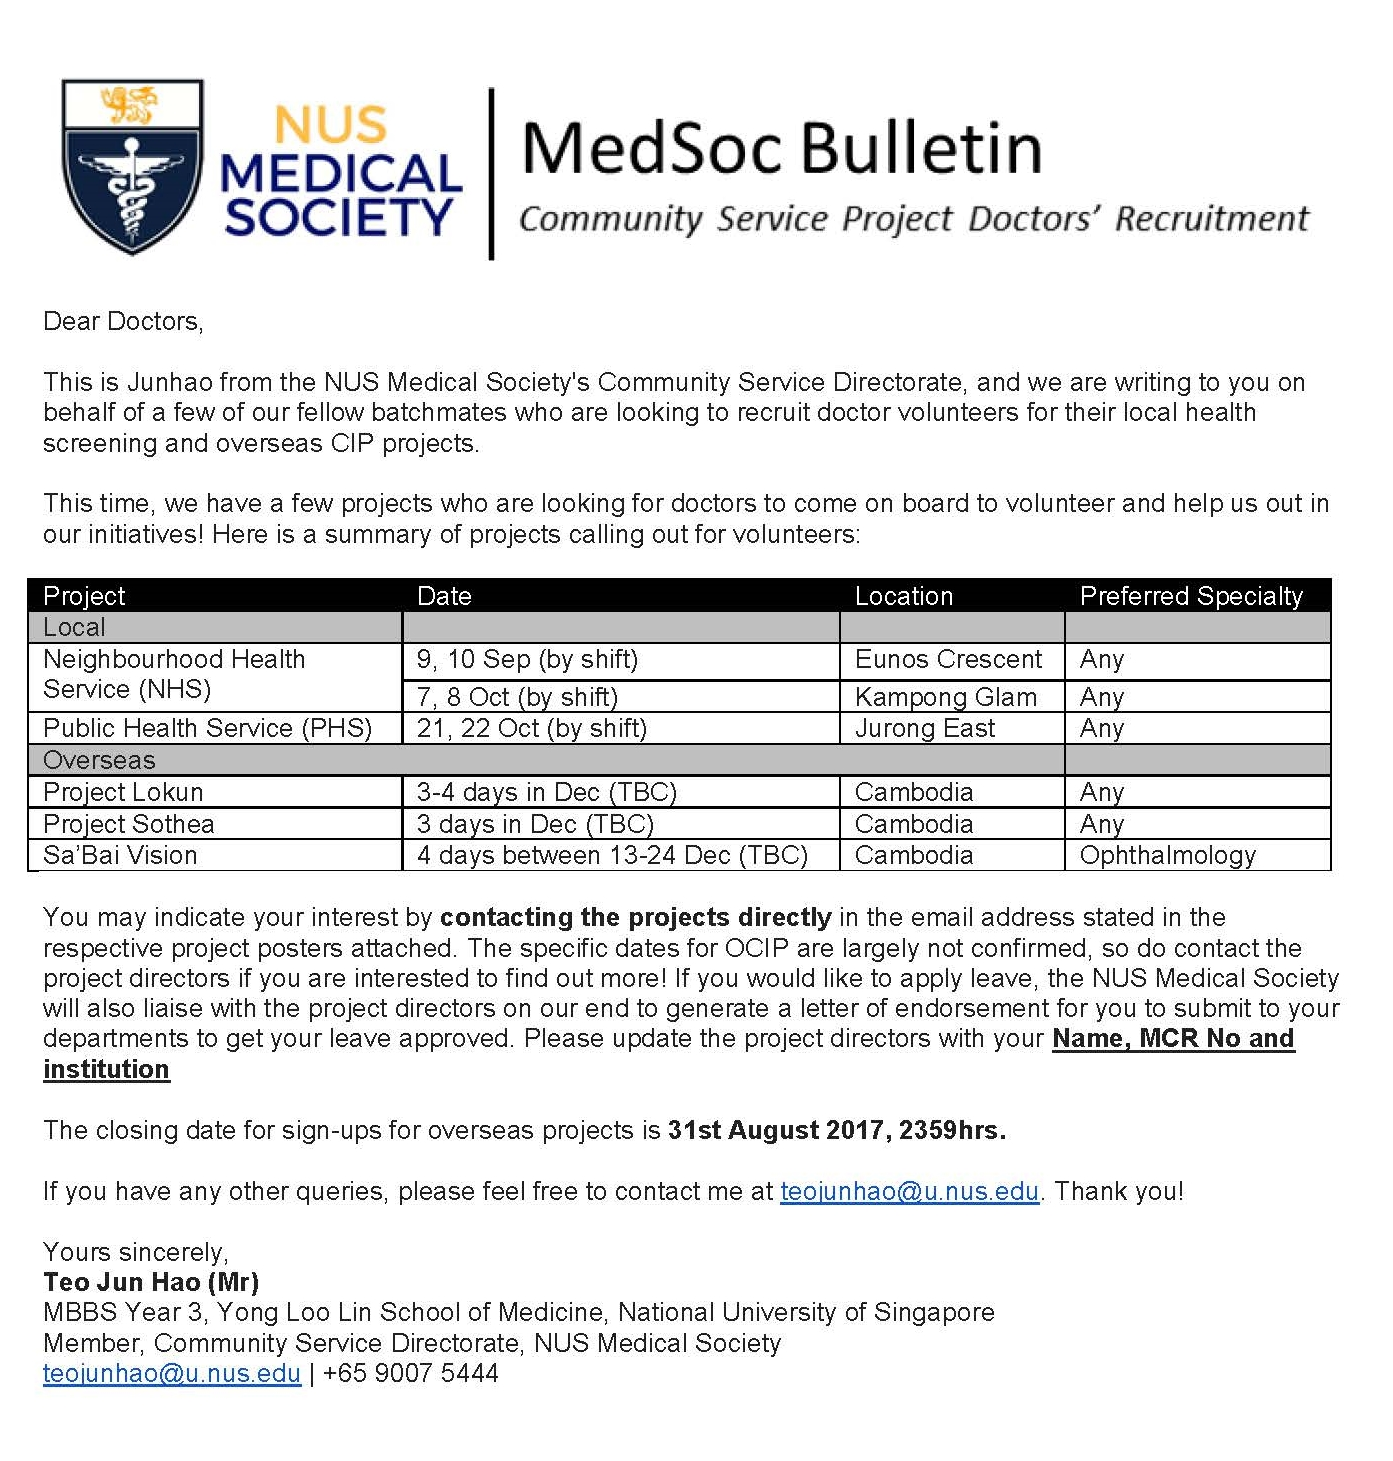 Medical Outreach Opportunities